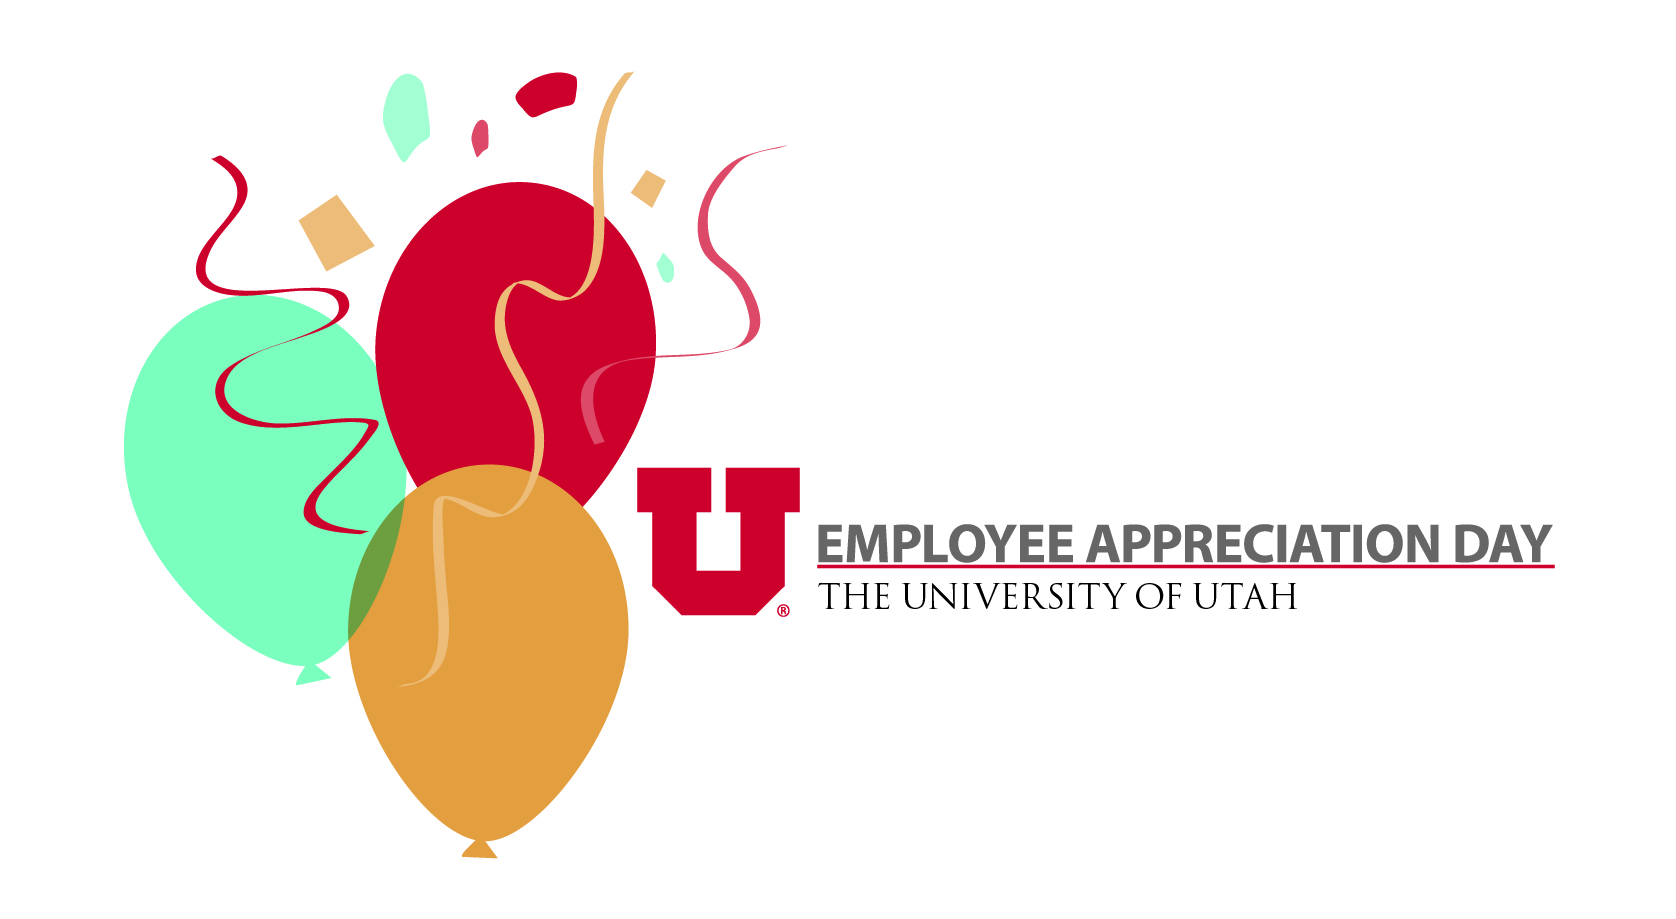 Employee Appreciation Day Clip Art Free N2 free image.